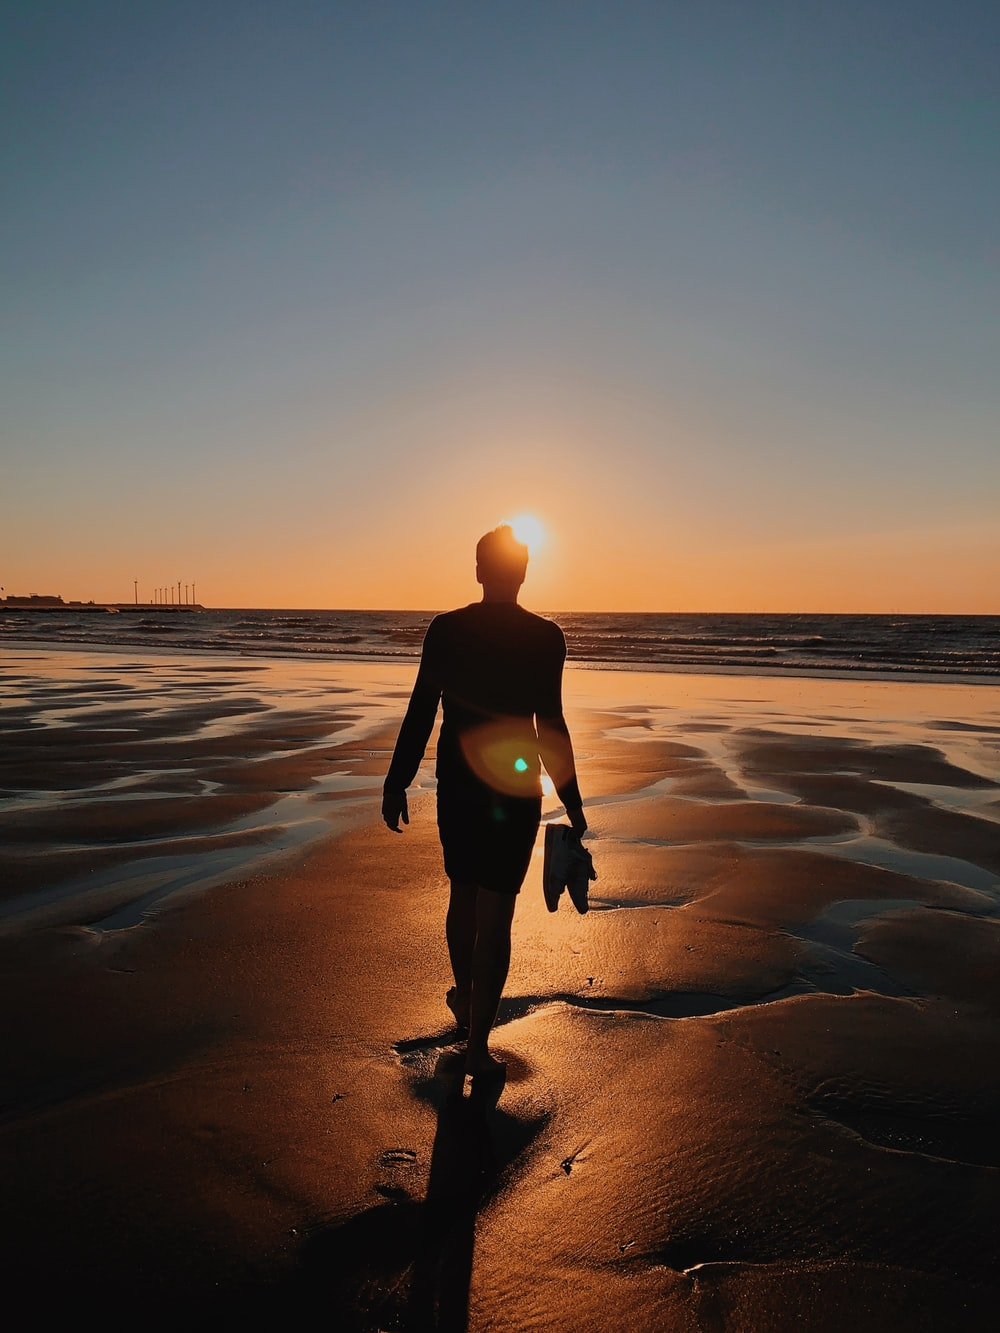 silhouette of person standing on shore